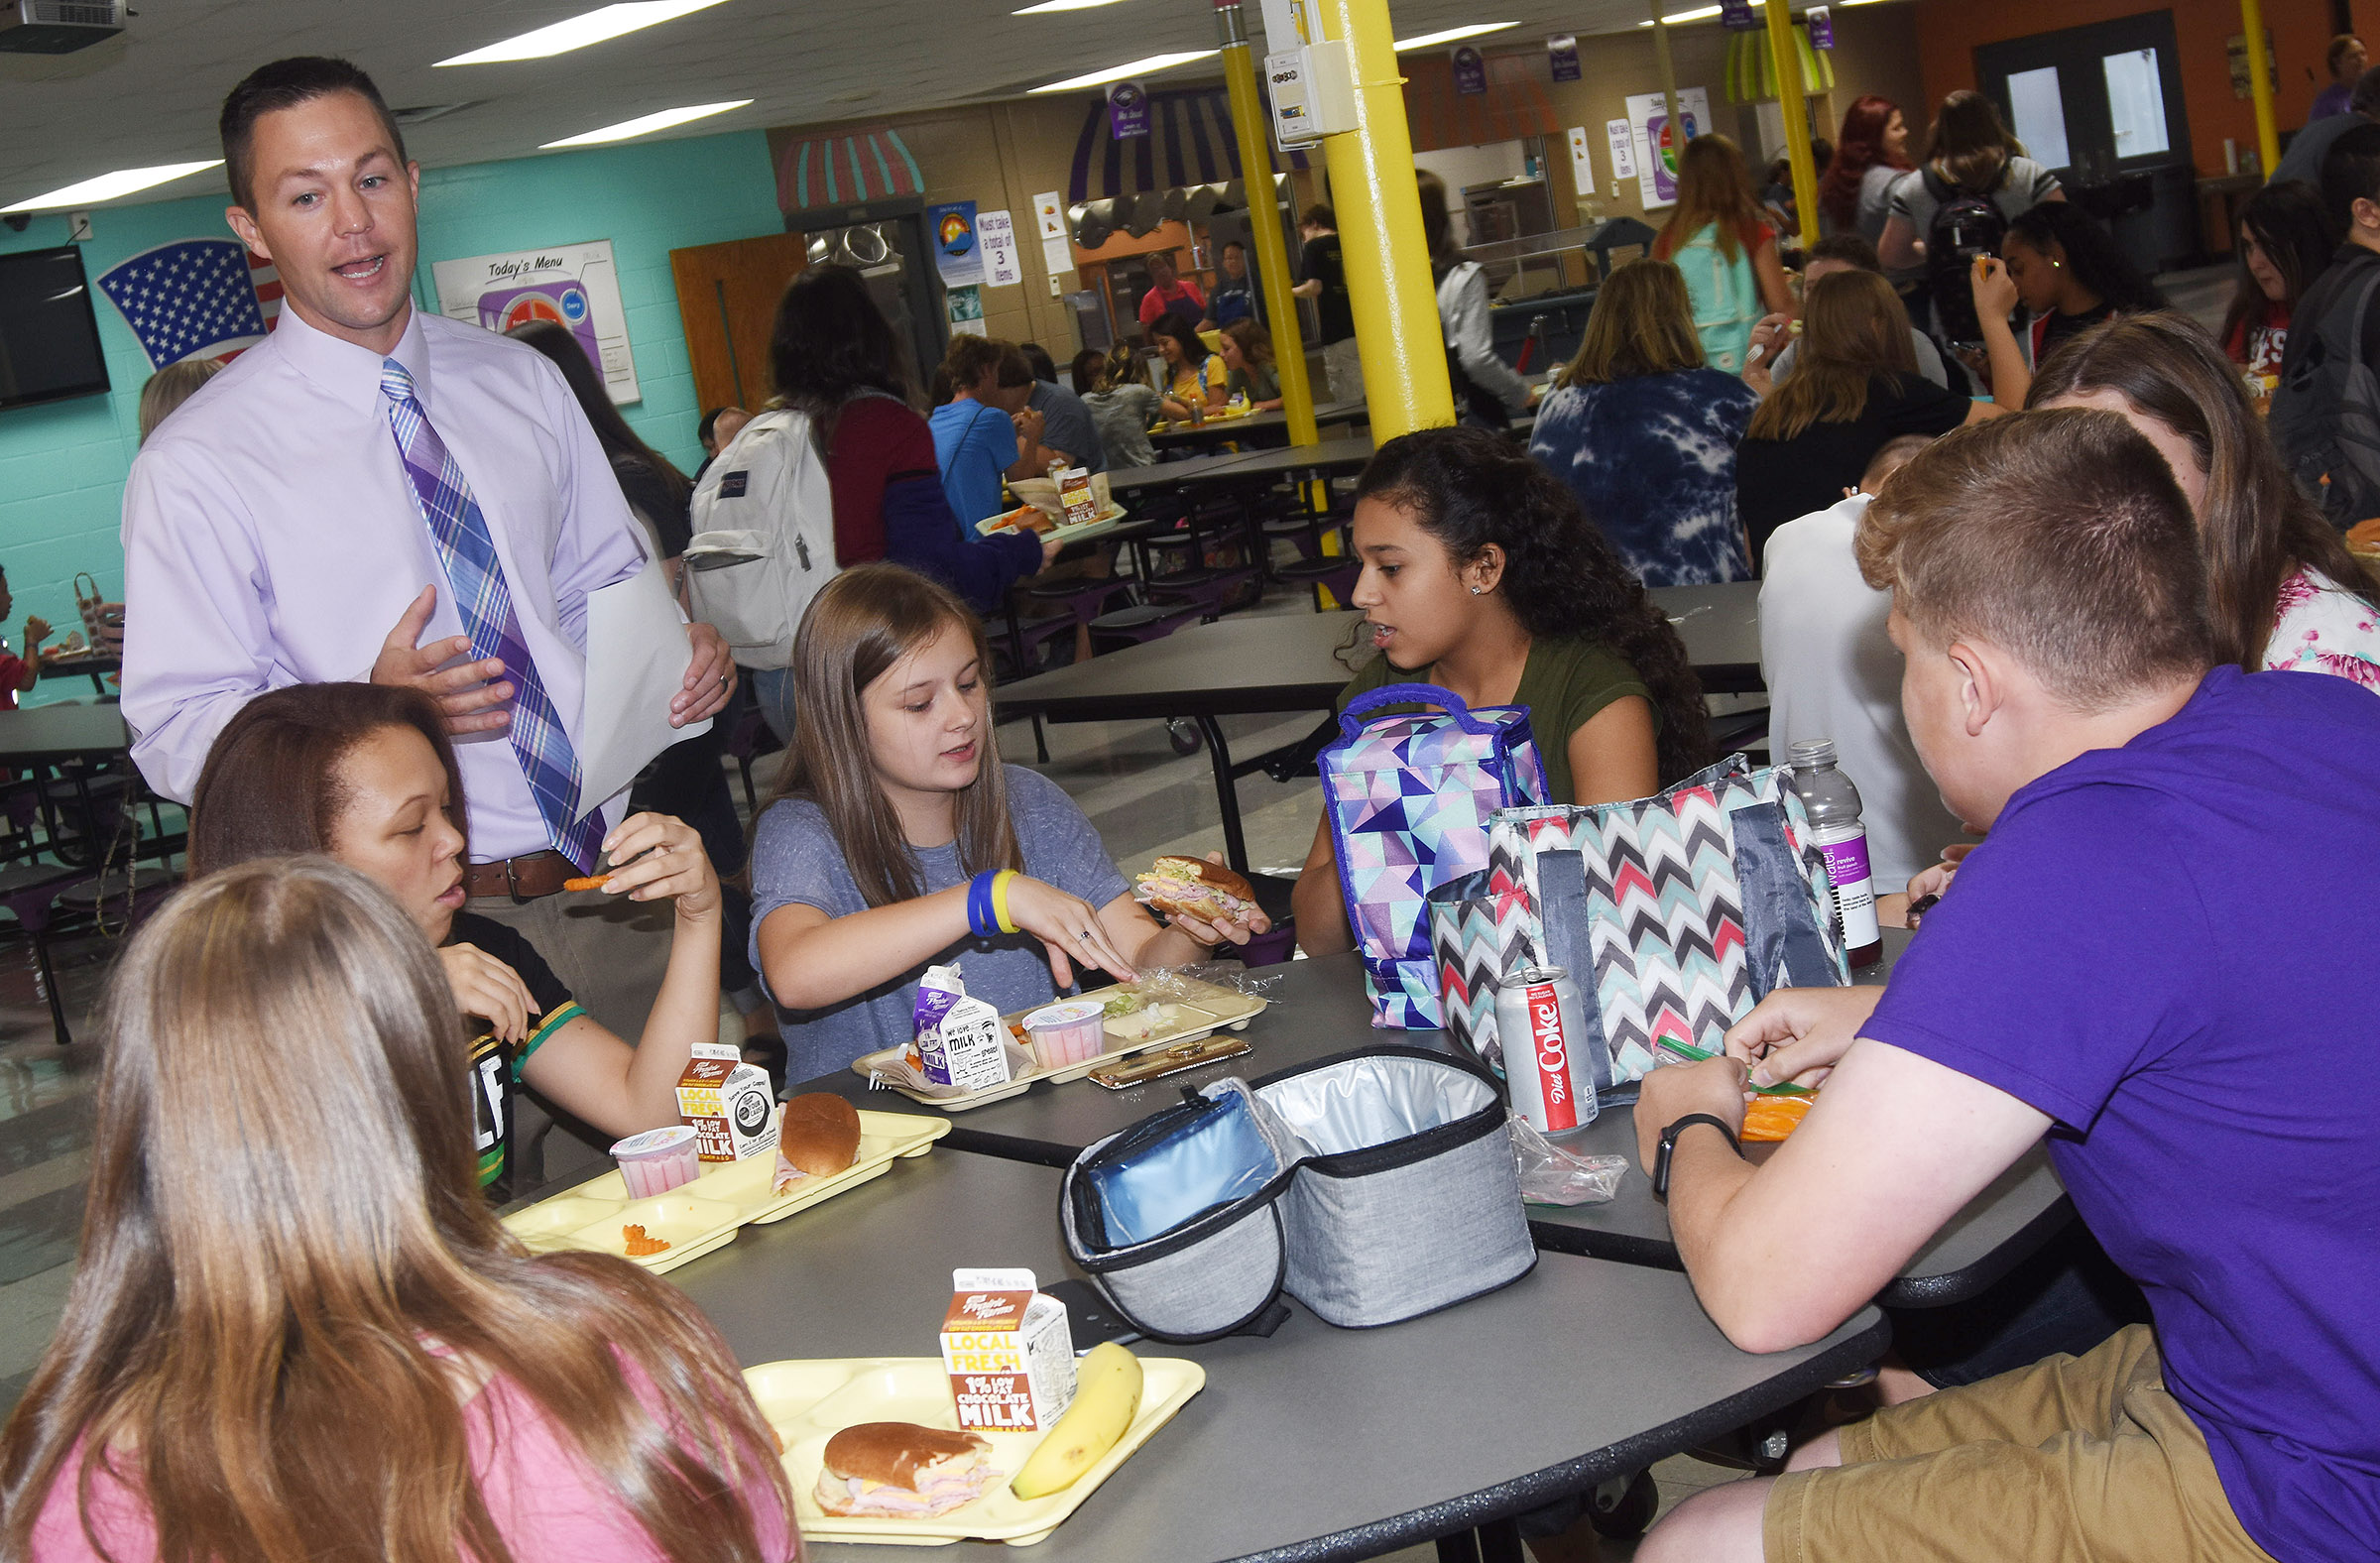 Campbellsville High School Principal Weston Jones talks to his students about their schedules as they enjoy their lunch.